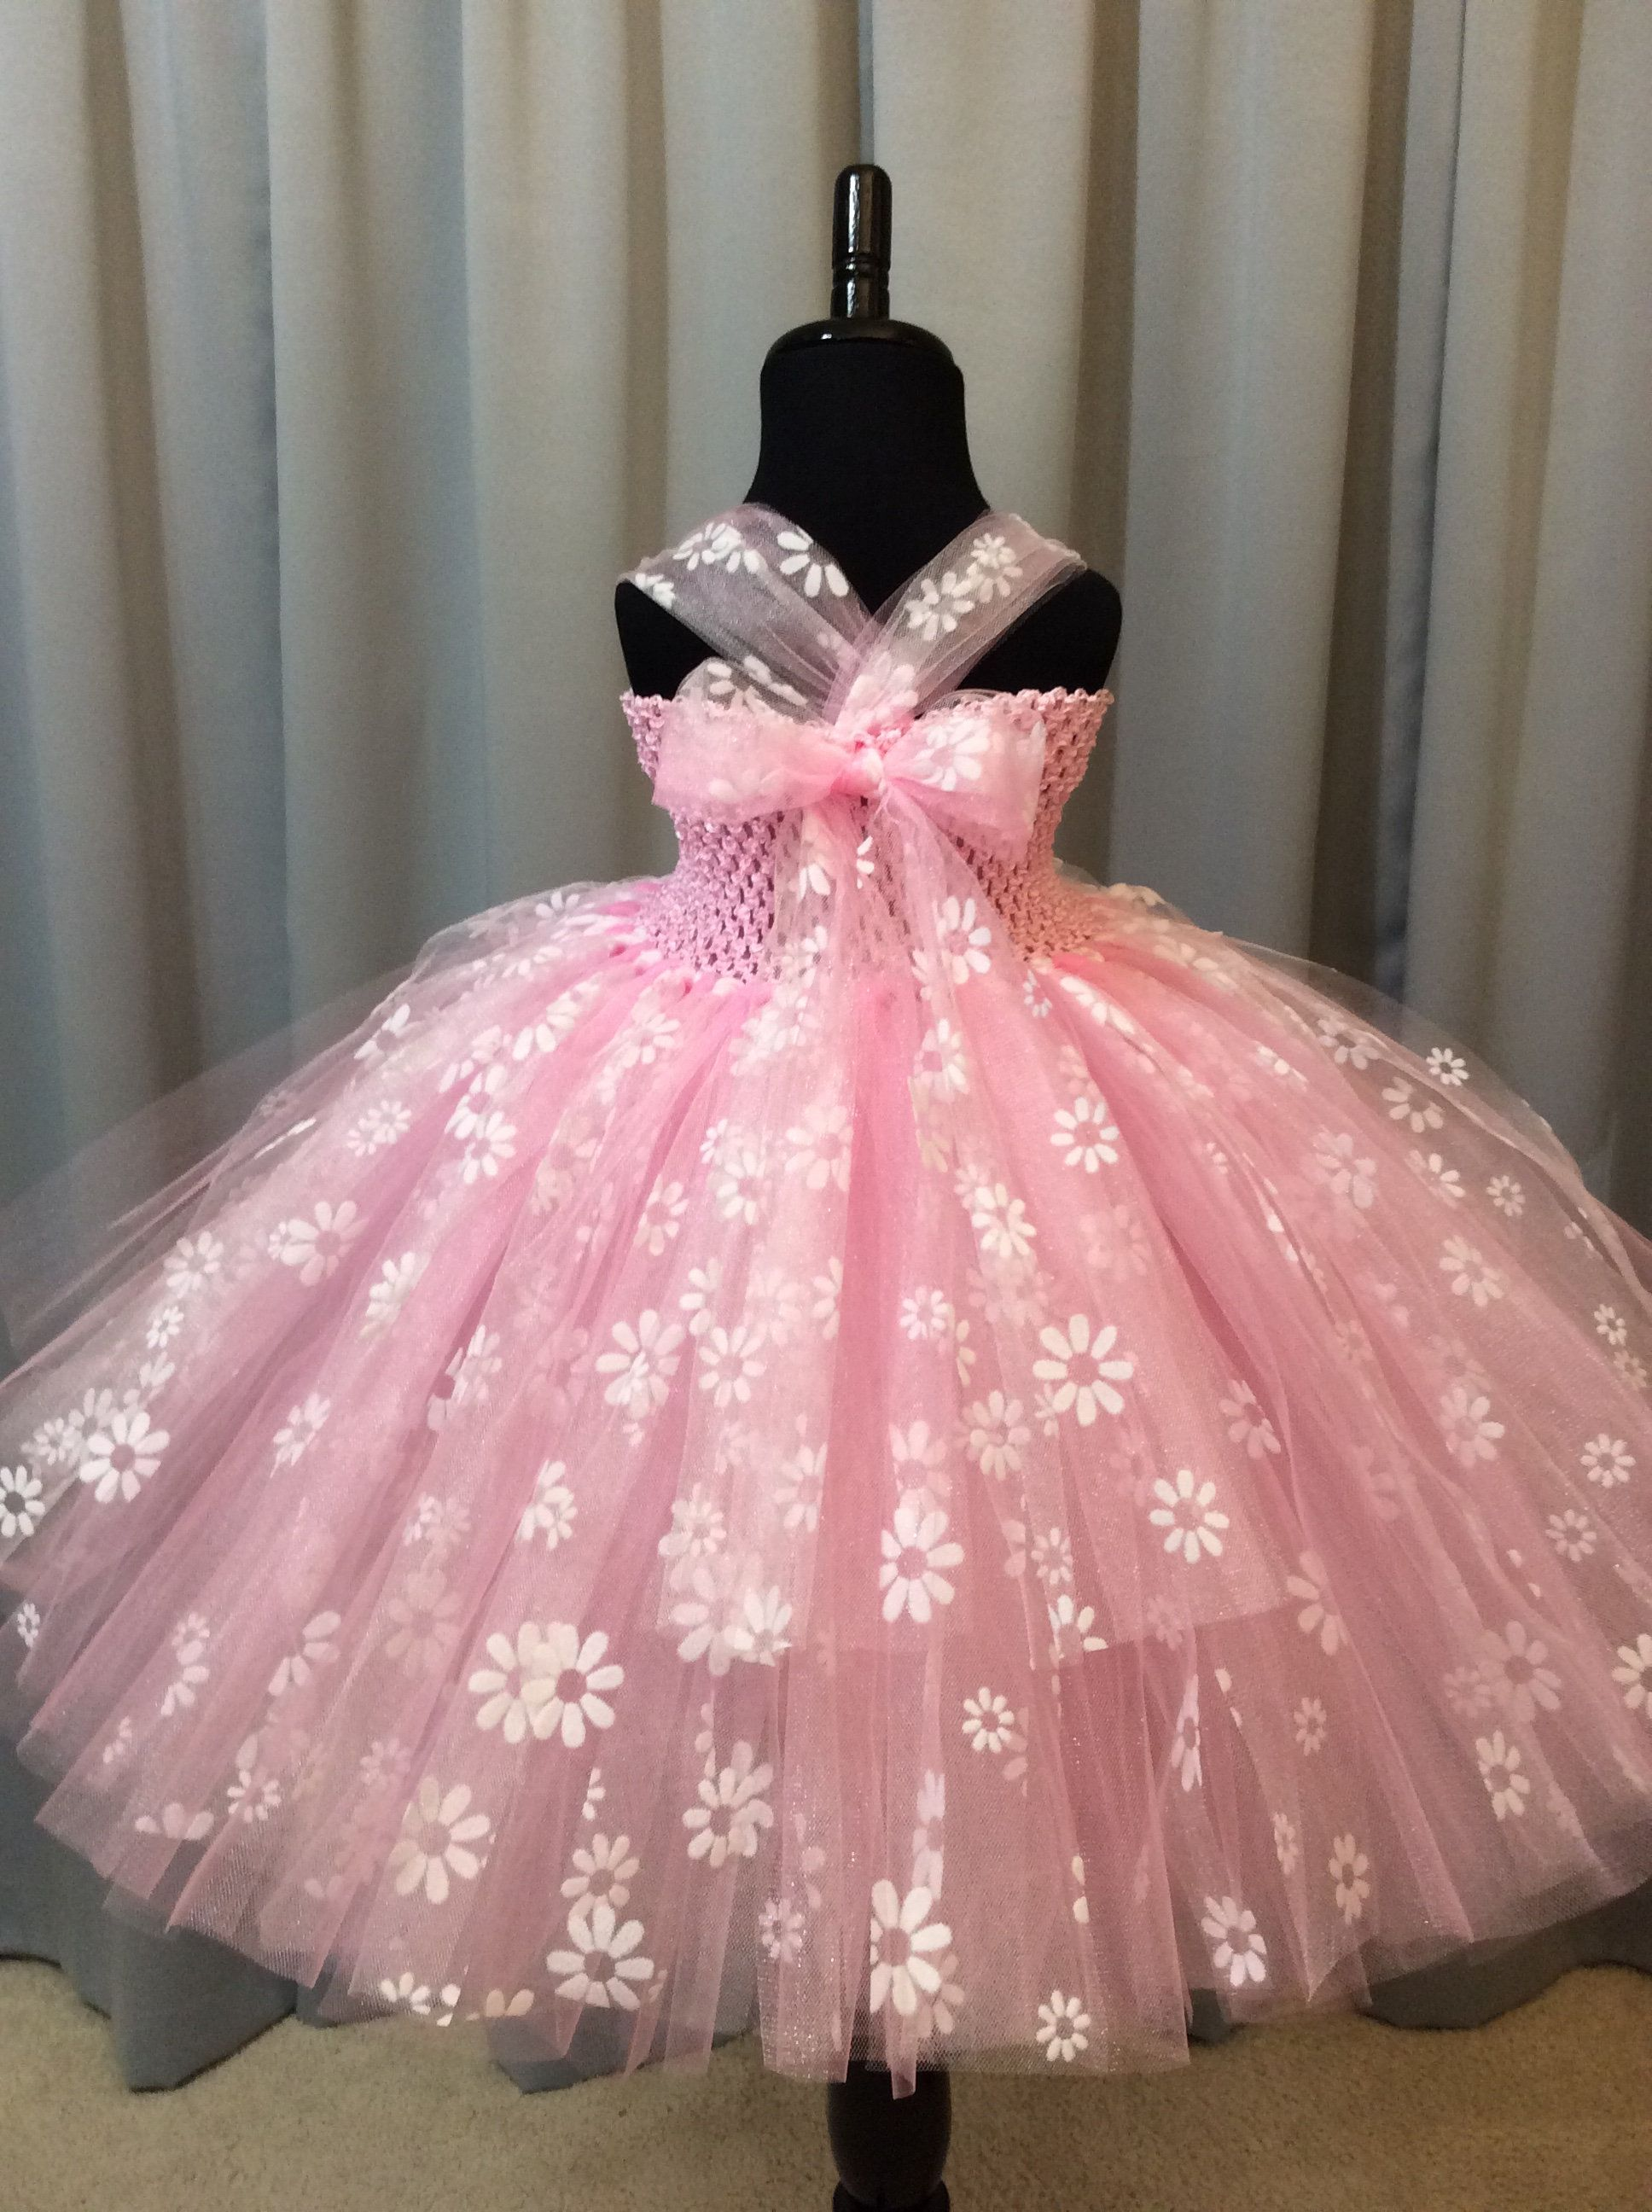 7a6332aa021f3 Pink princess tutu dress with white flowers birthday dress | Tutus ...